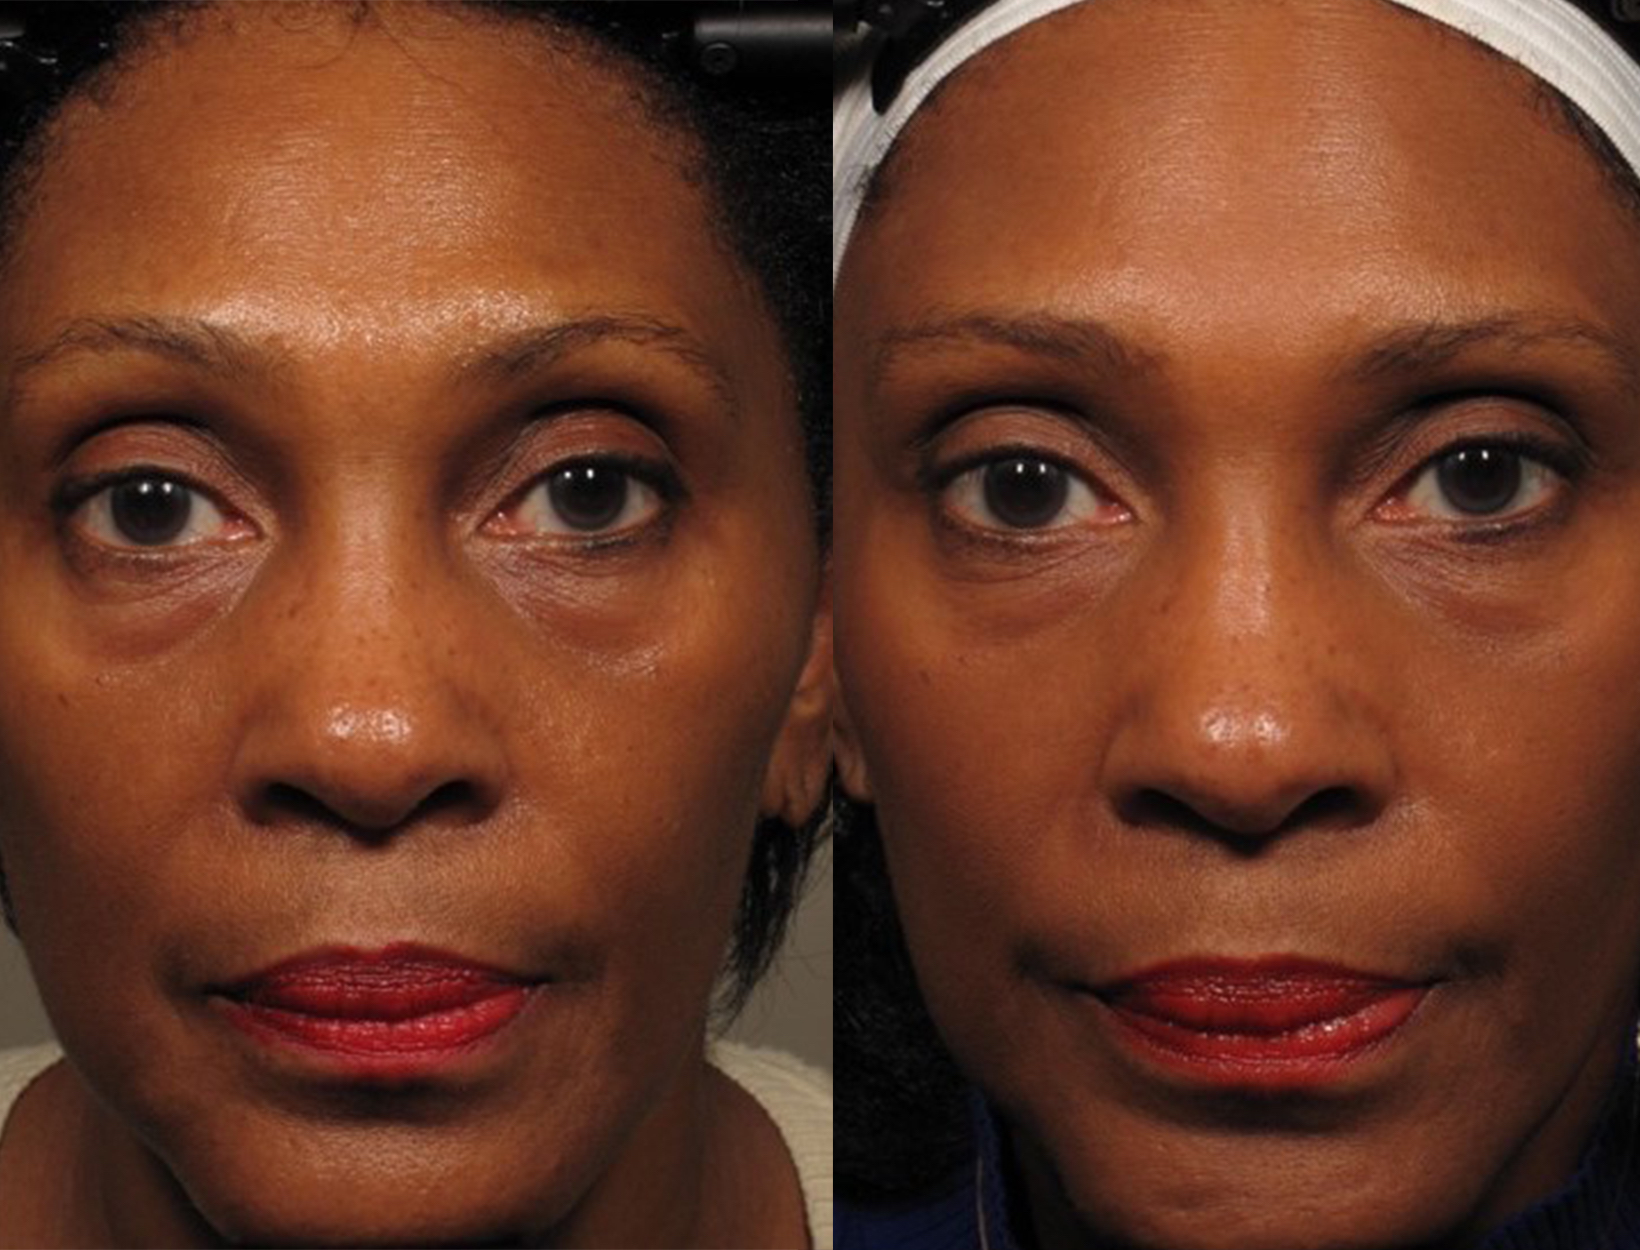 Will facial exercises improve skin tone